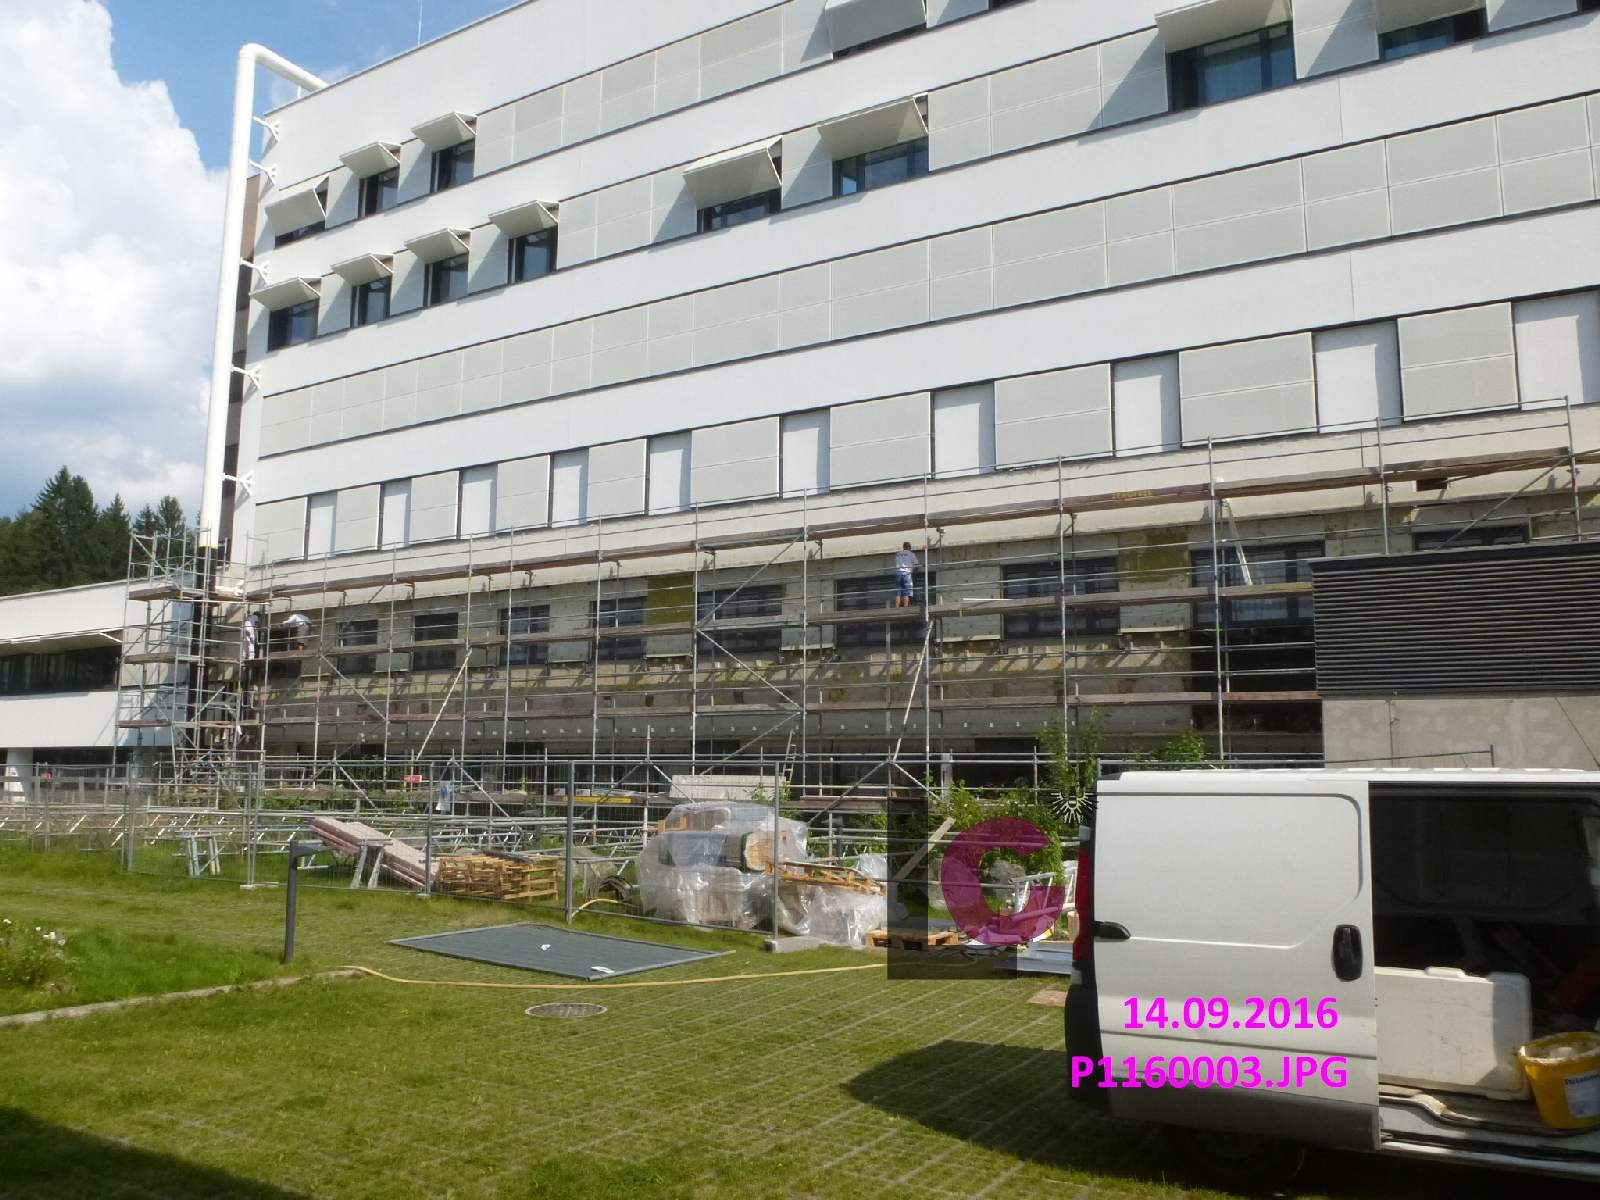 Window replacement and facade renovation in the adult wing 1, LKH Leoben